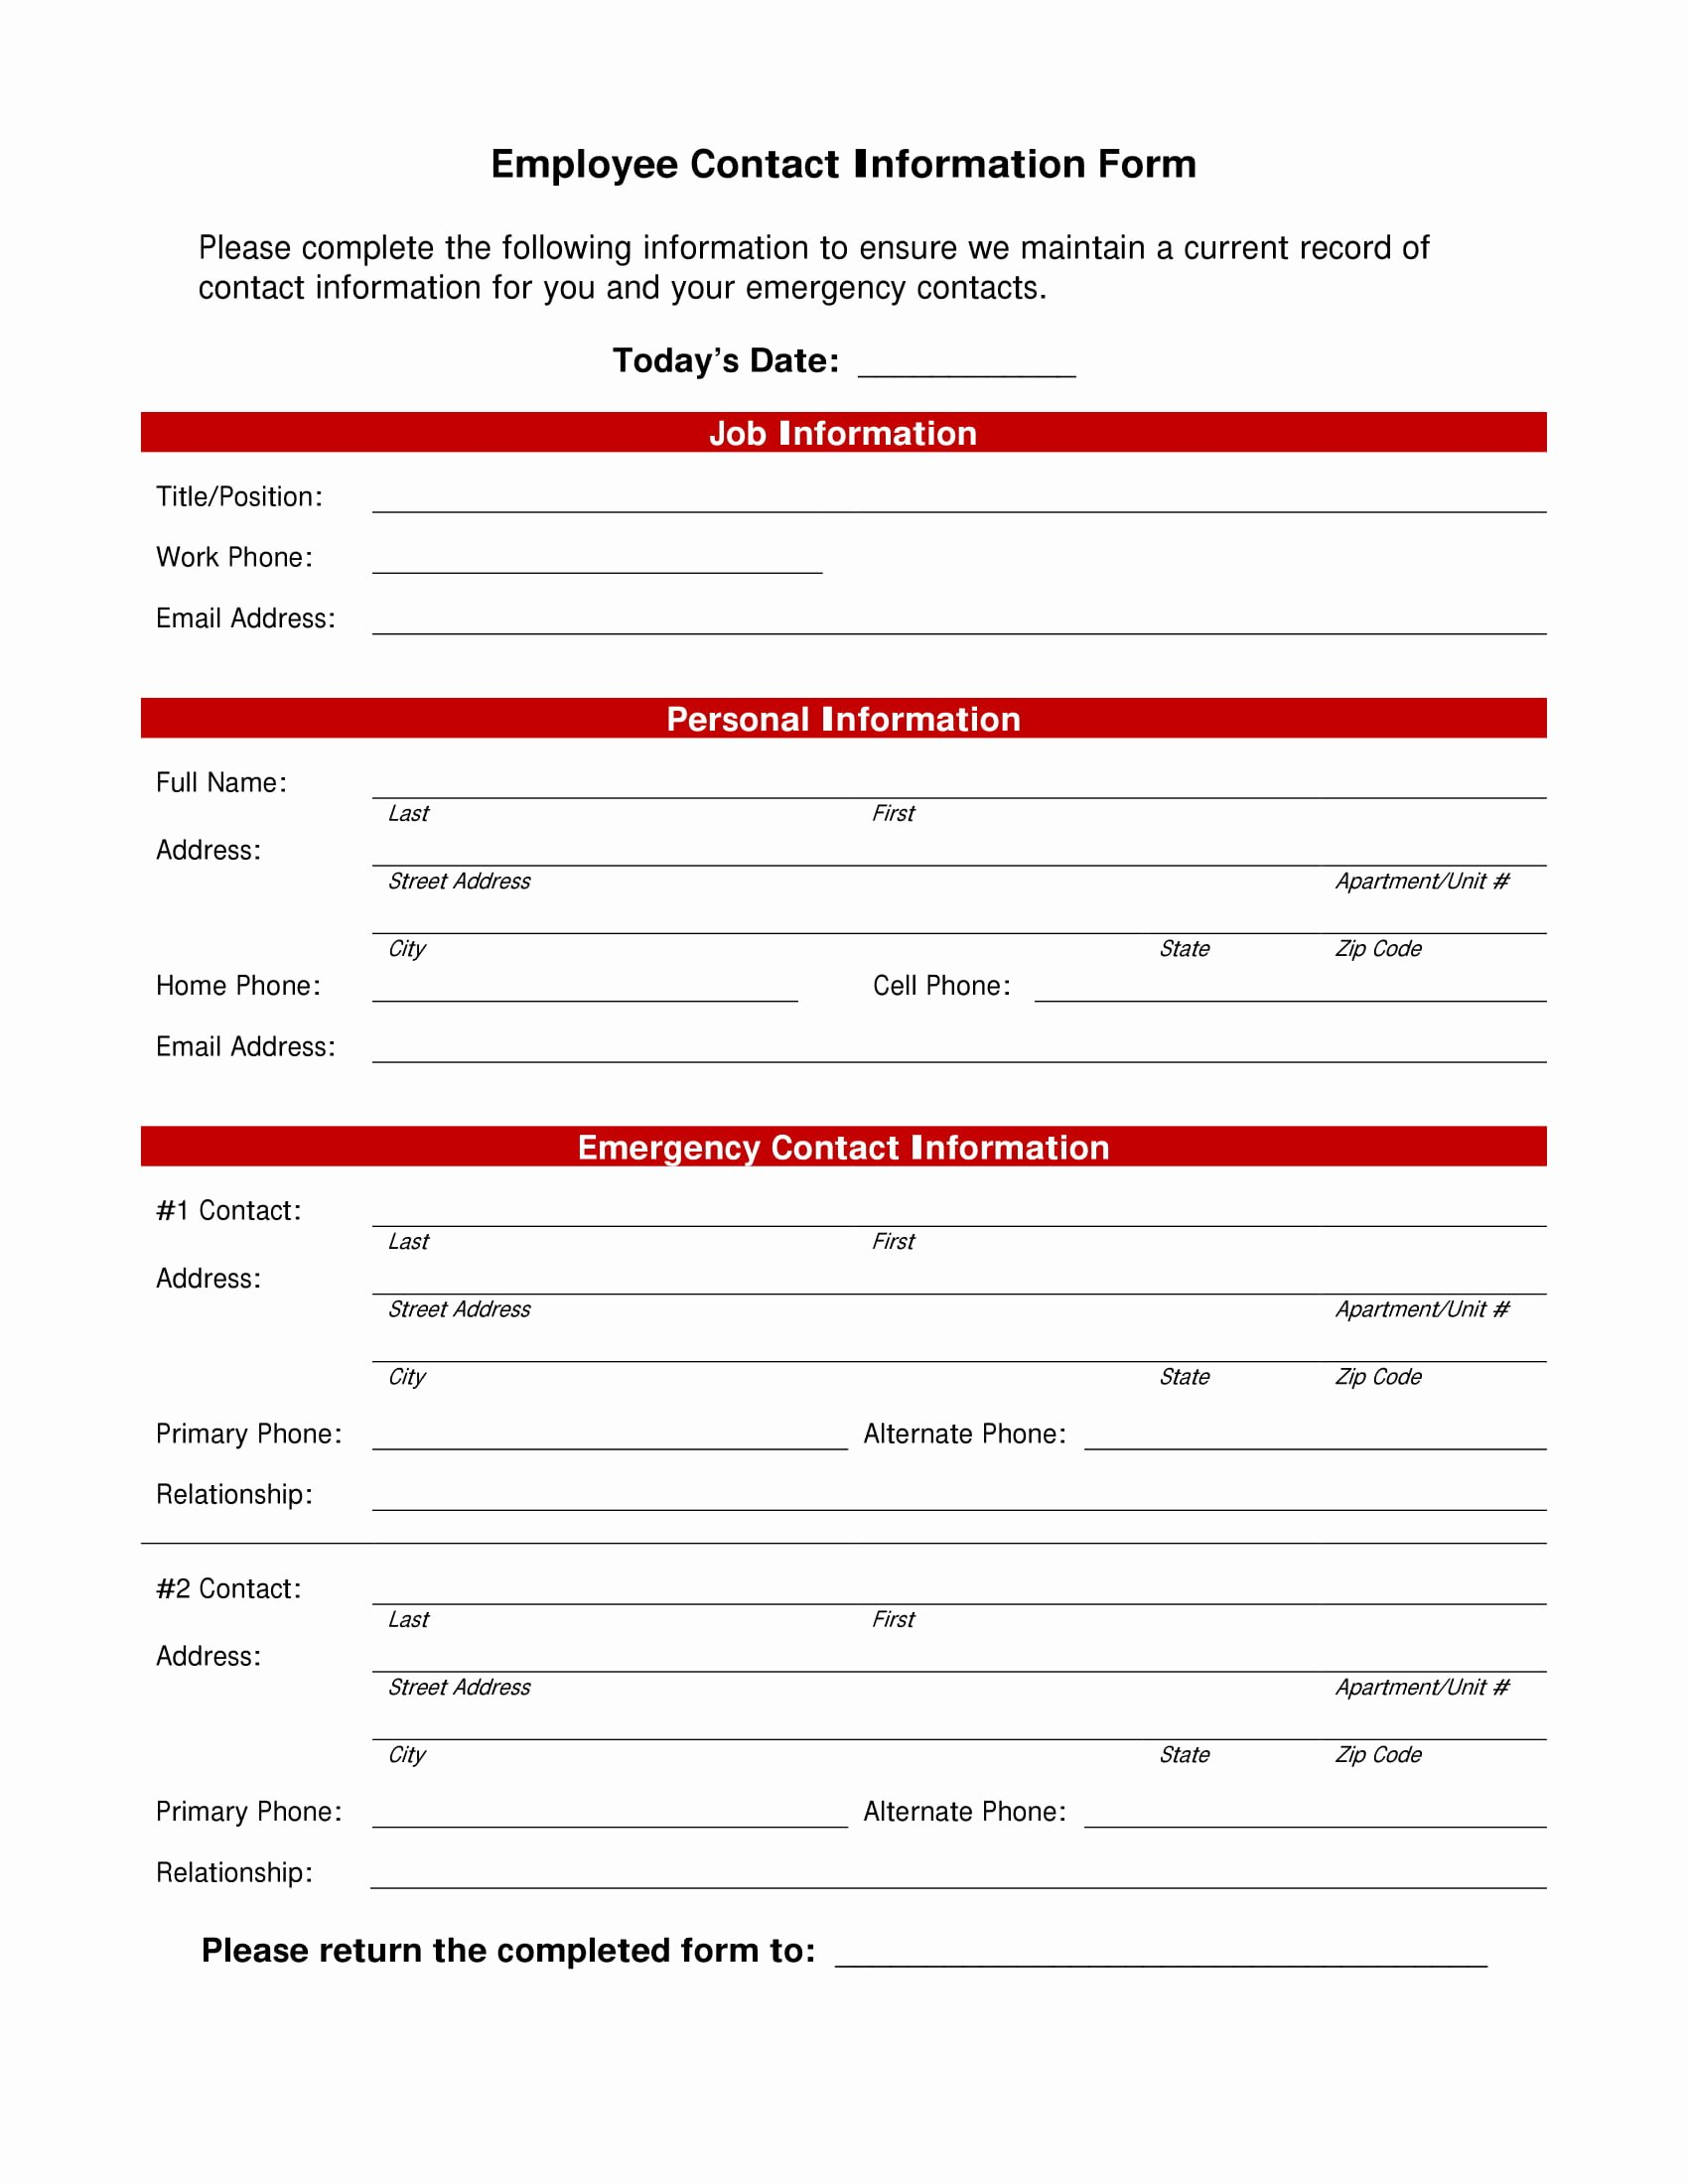 Employee Directory Template Lovely 10 Employee Information form Examples Pdf